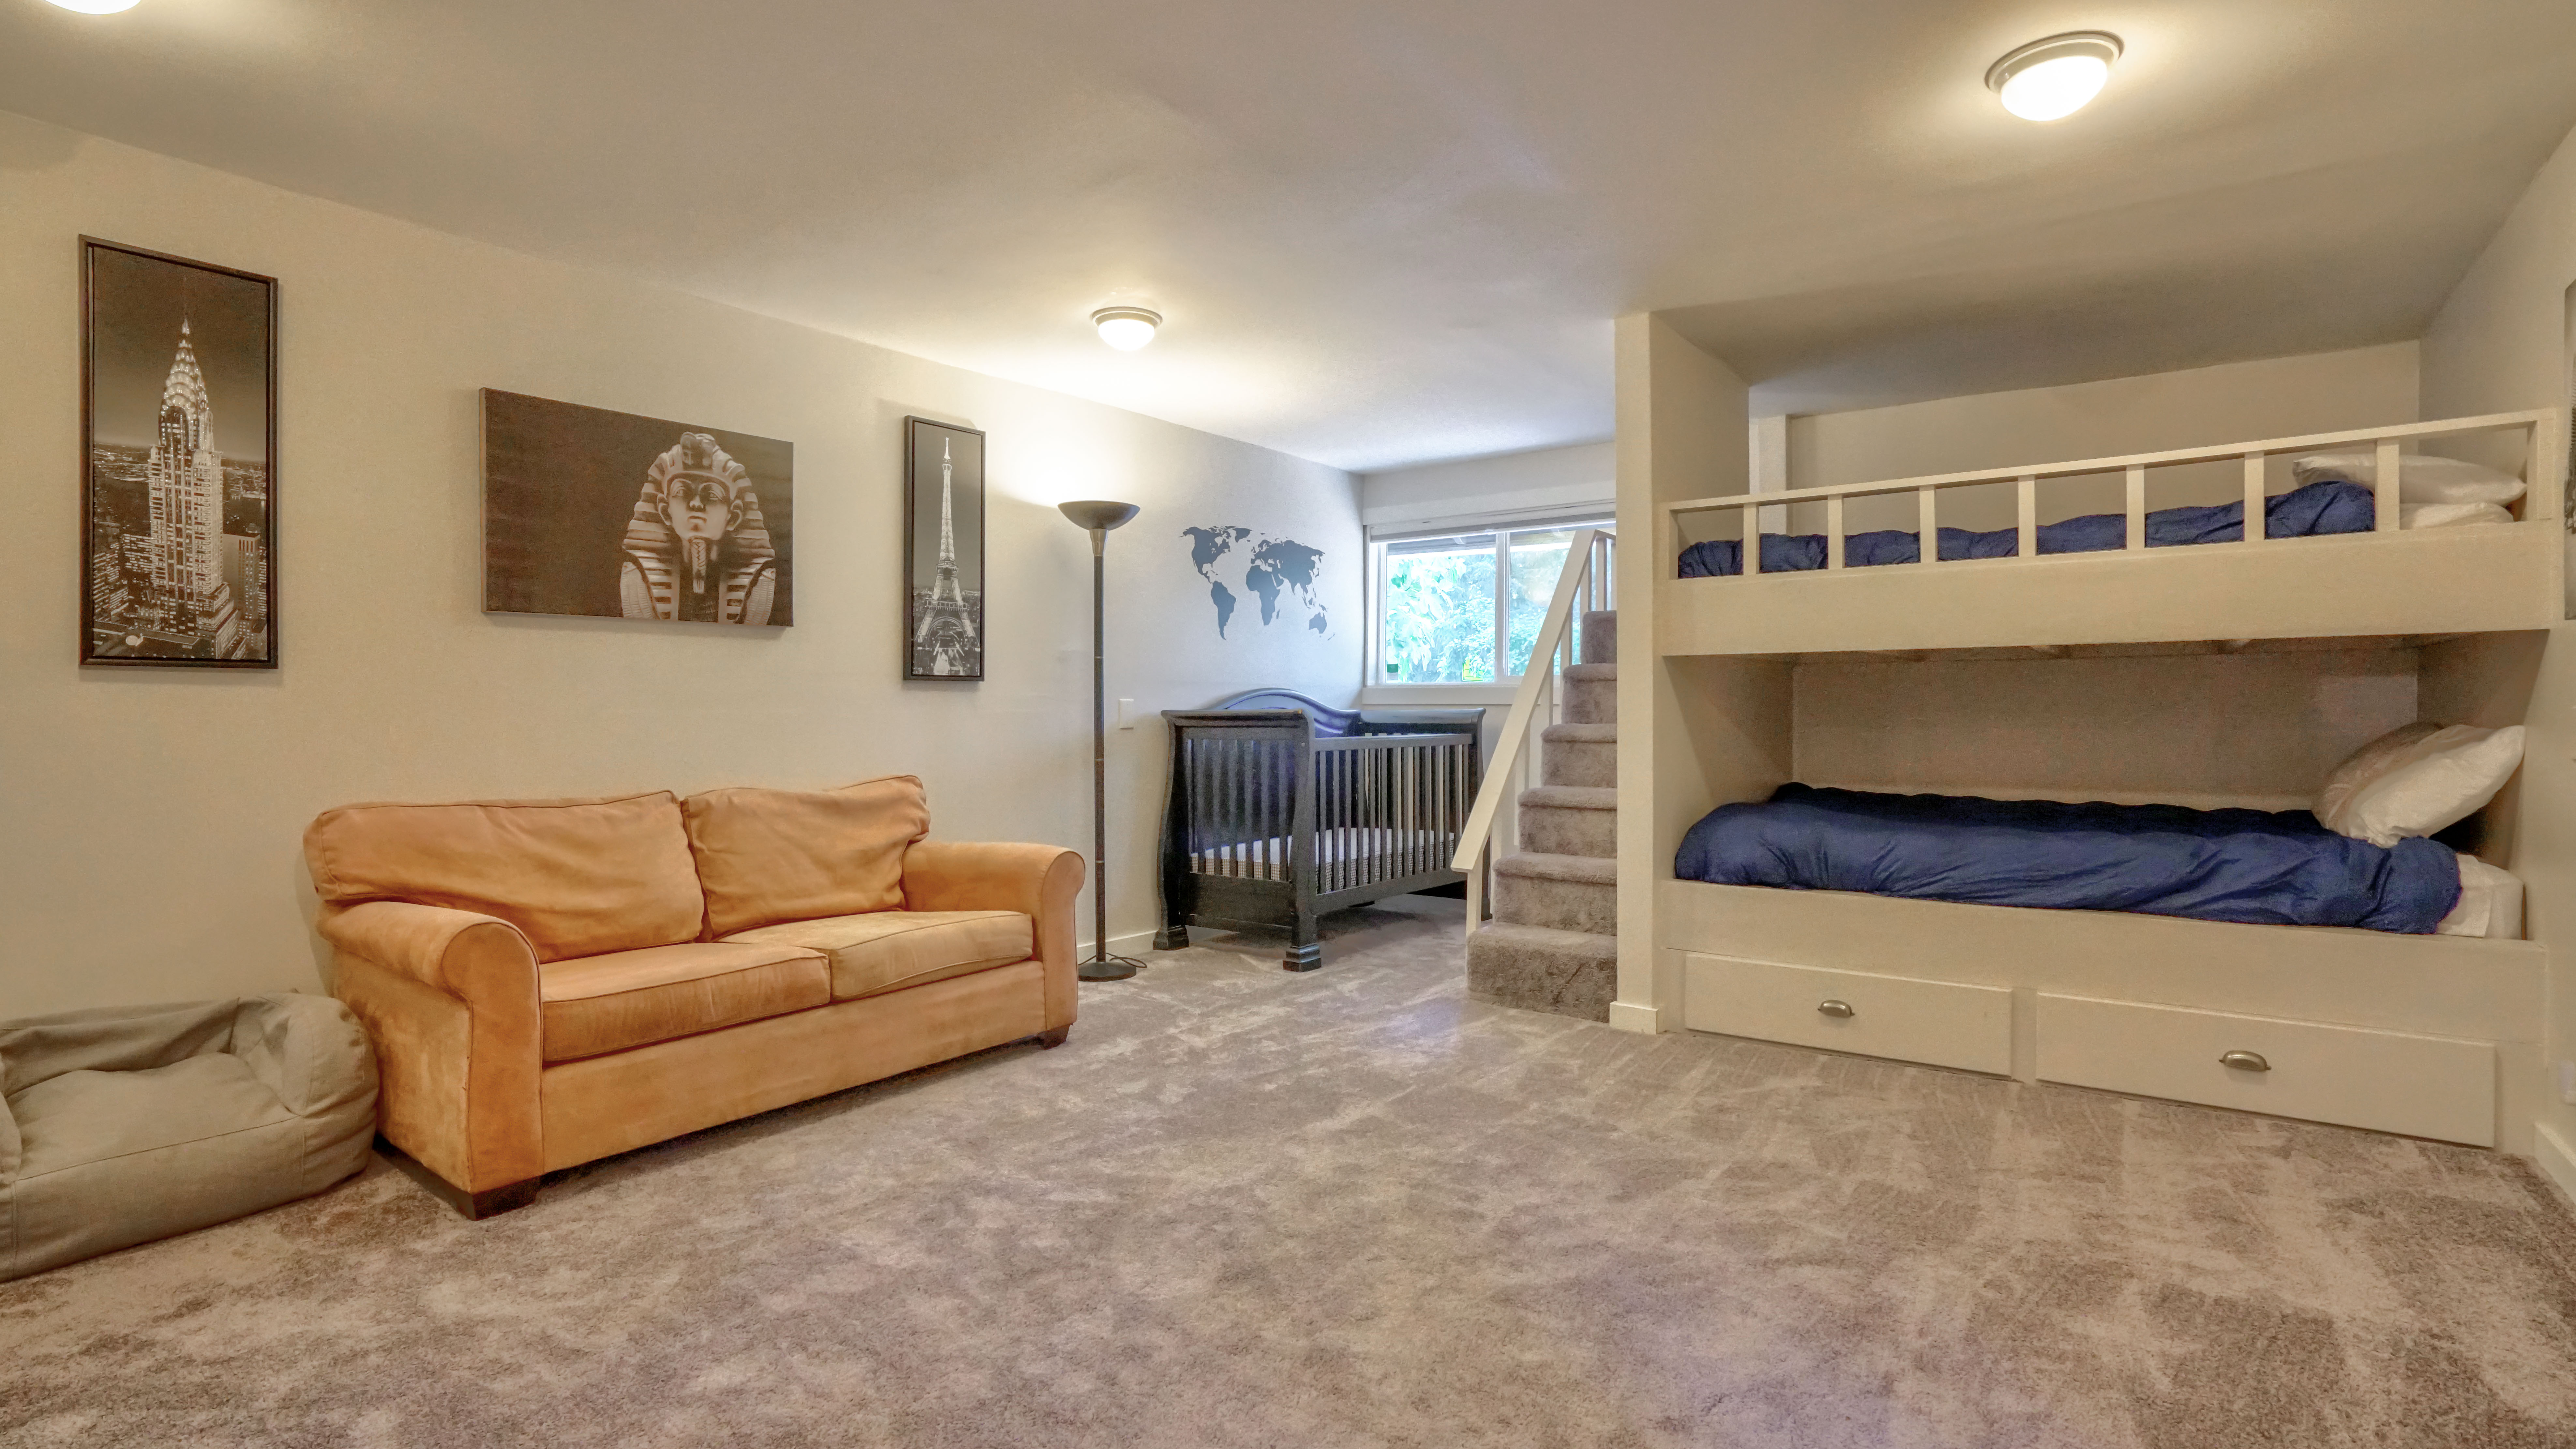 renting out individual beds in vacation home rental room